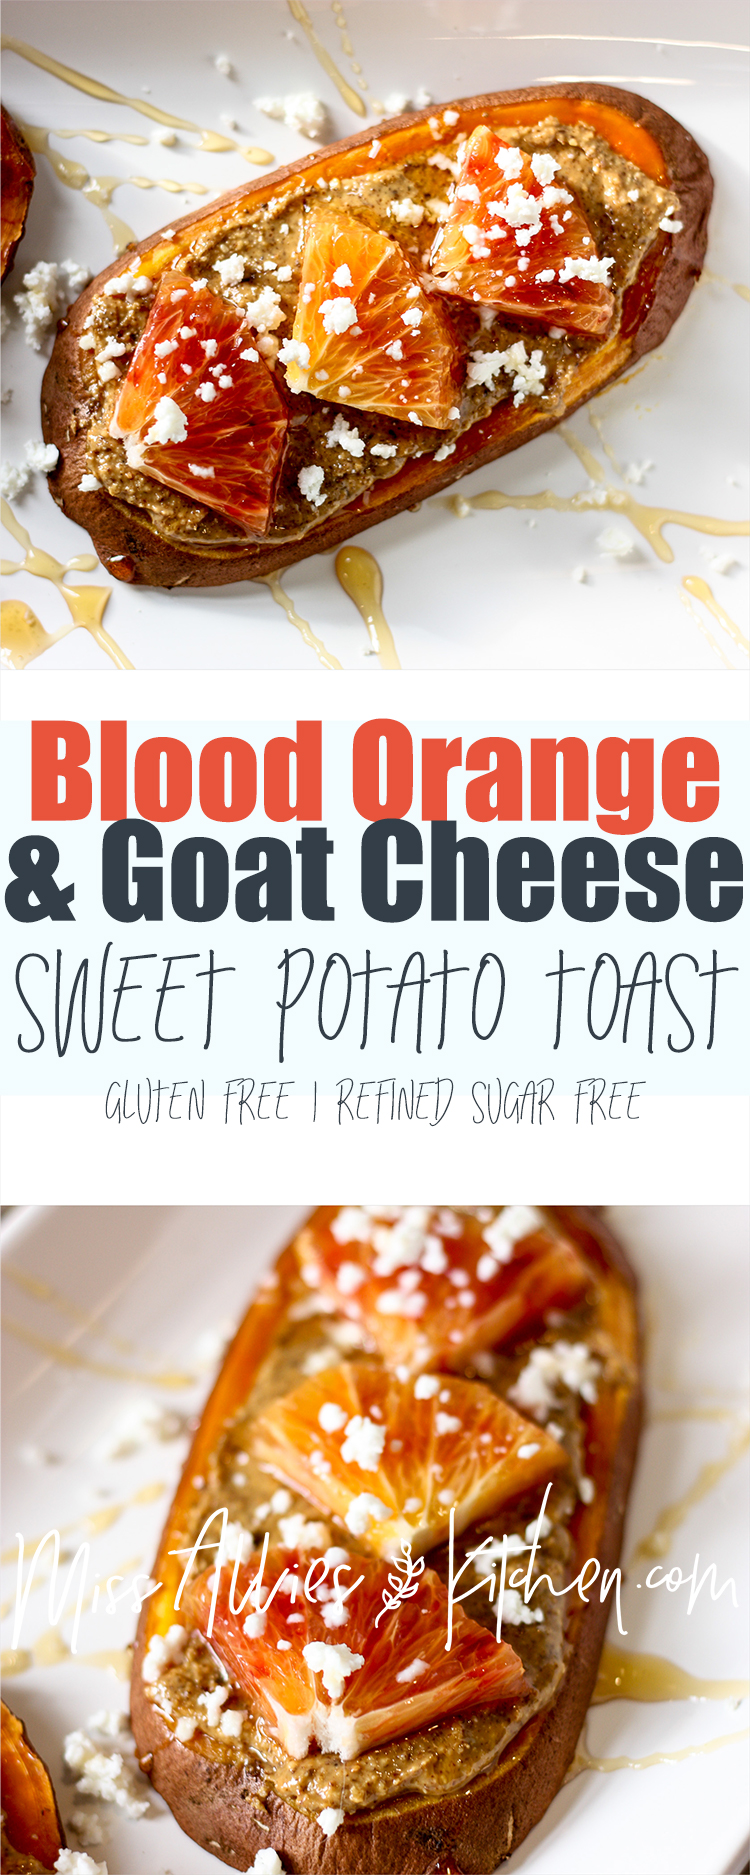 Blood Orange & Goat Cheese Sweet Potato Toast